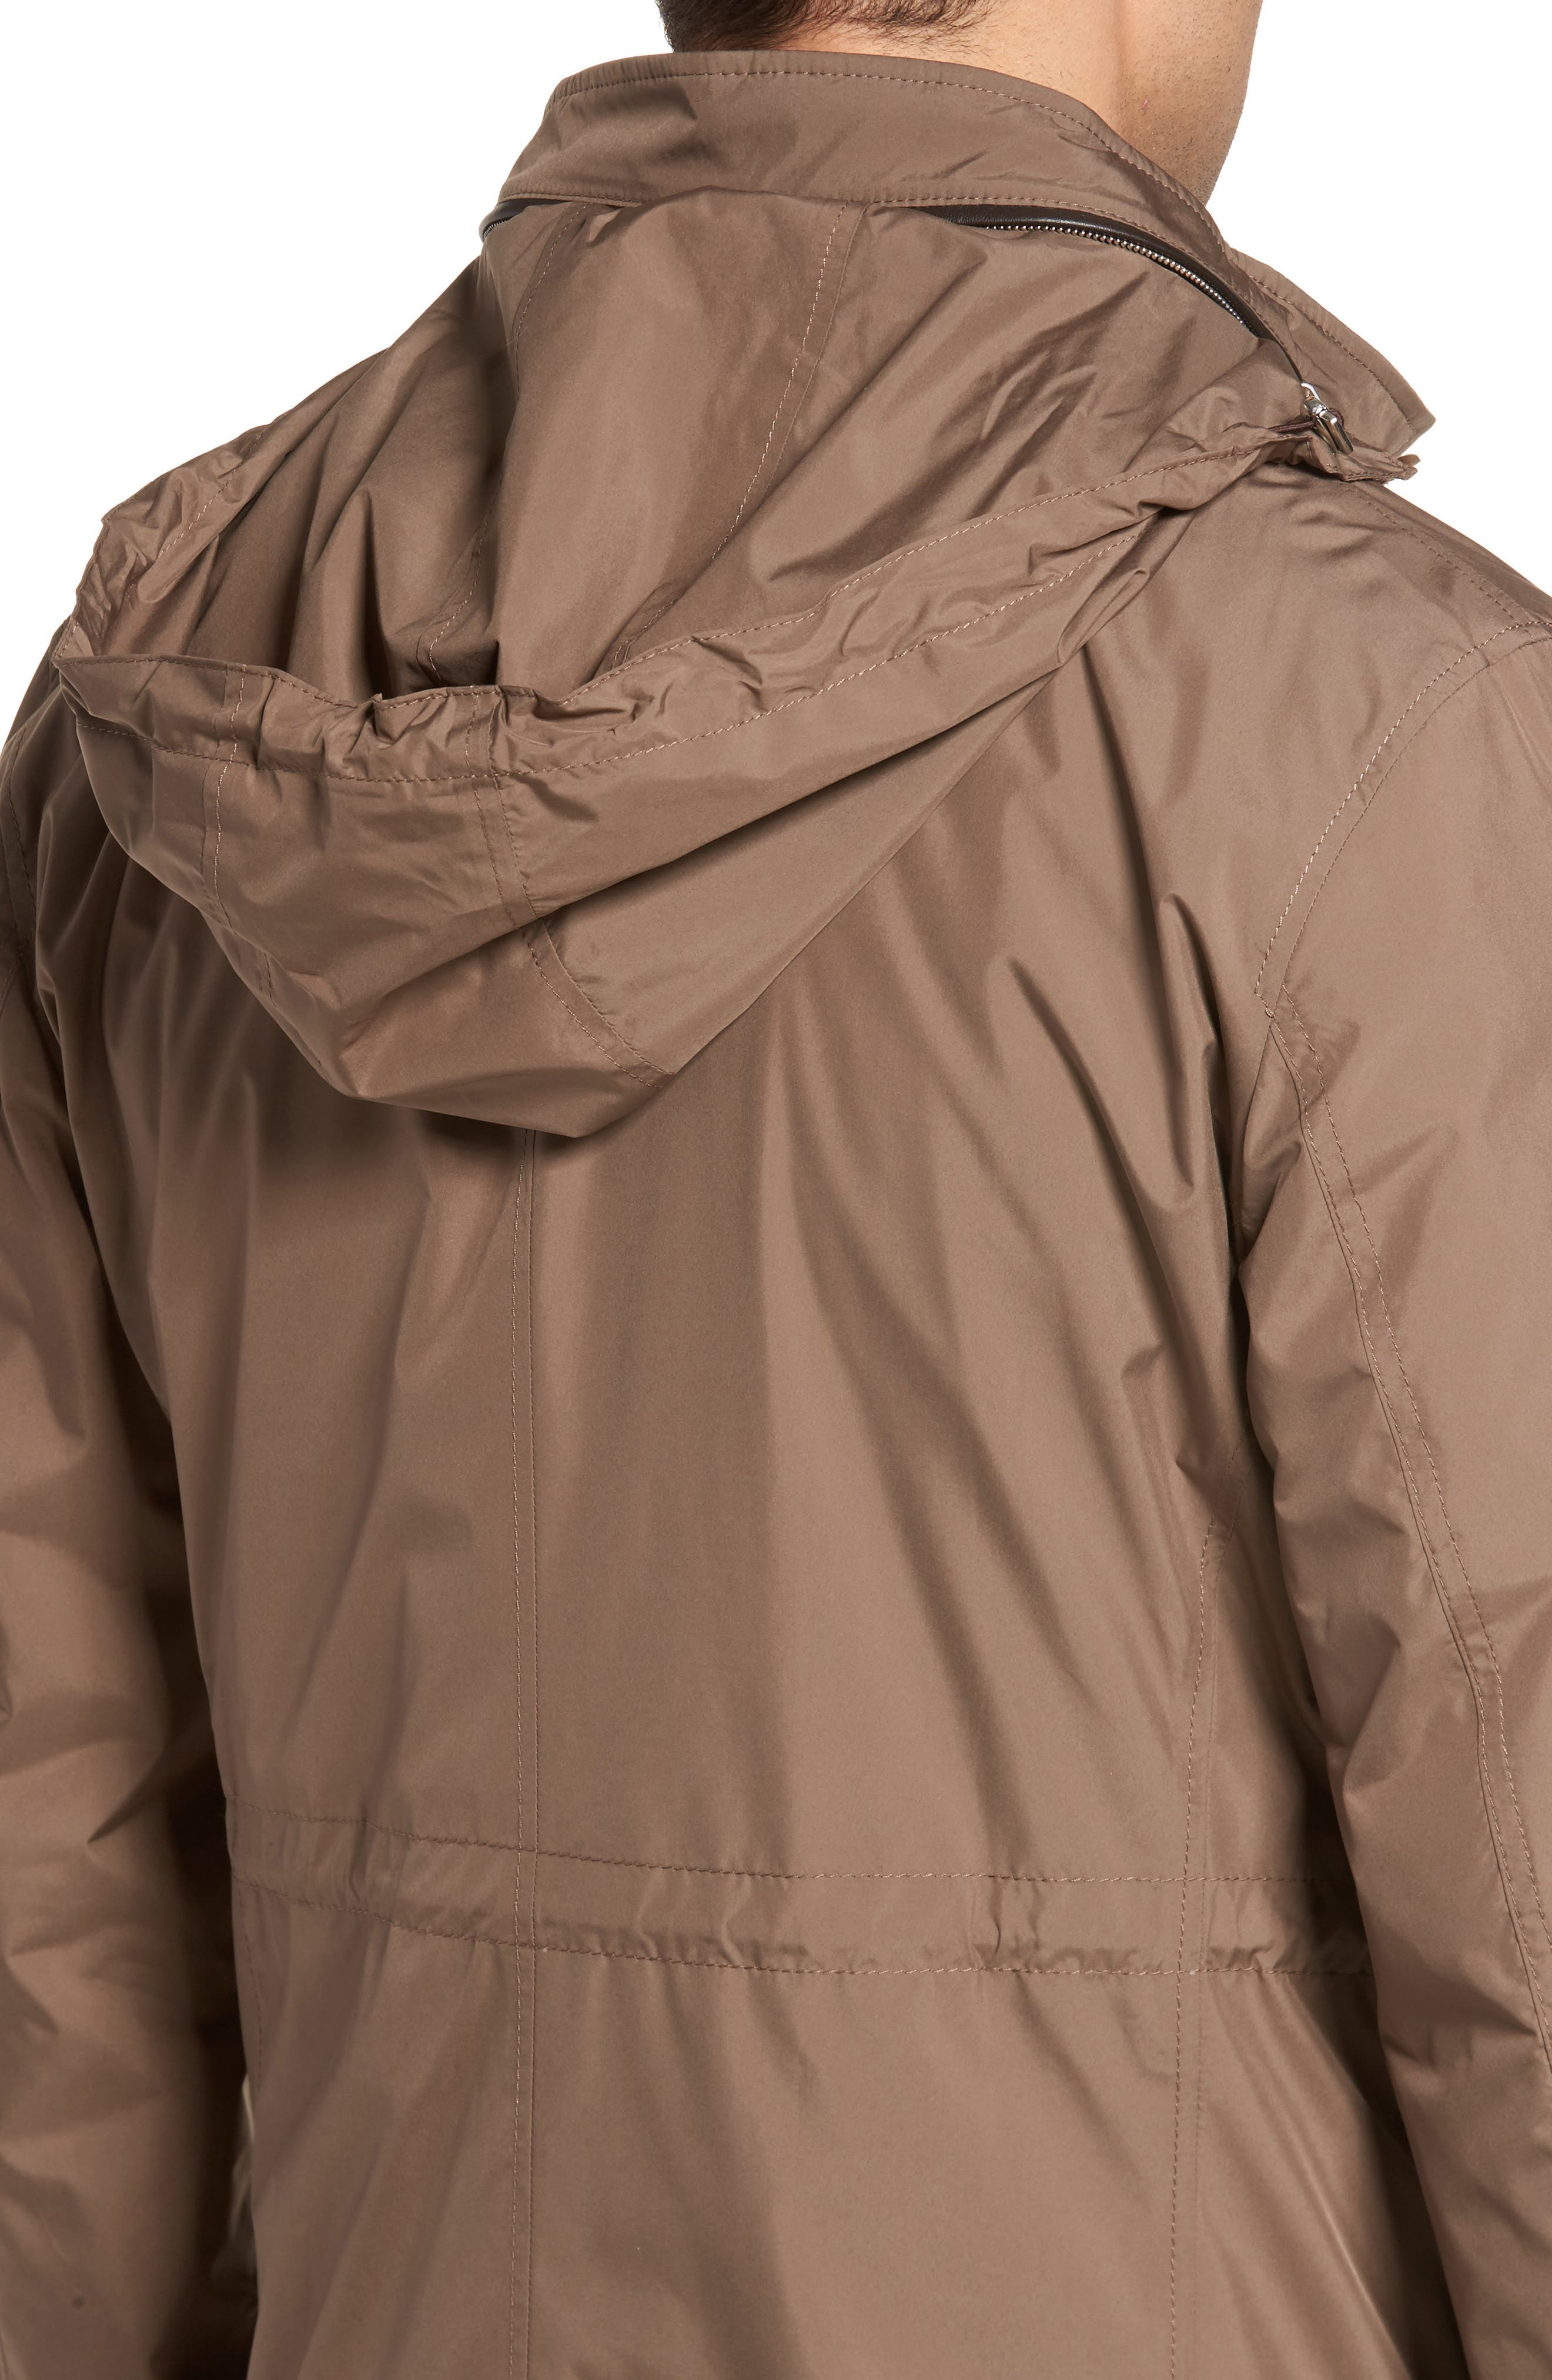 All Weather Discovery Jacket,                             Alternate thumbnail 4, color,                             240